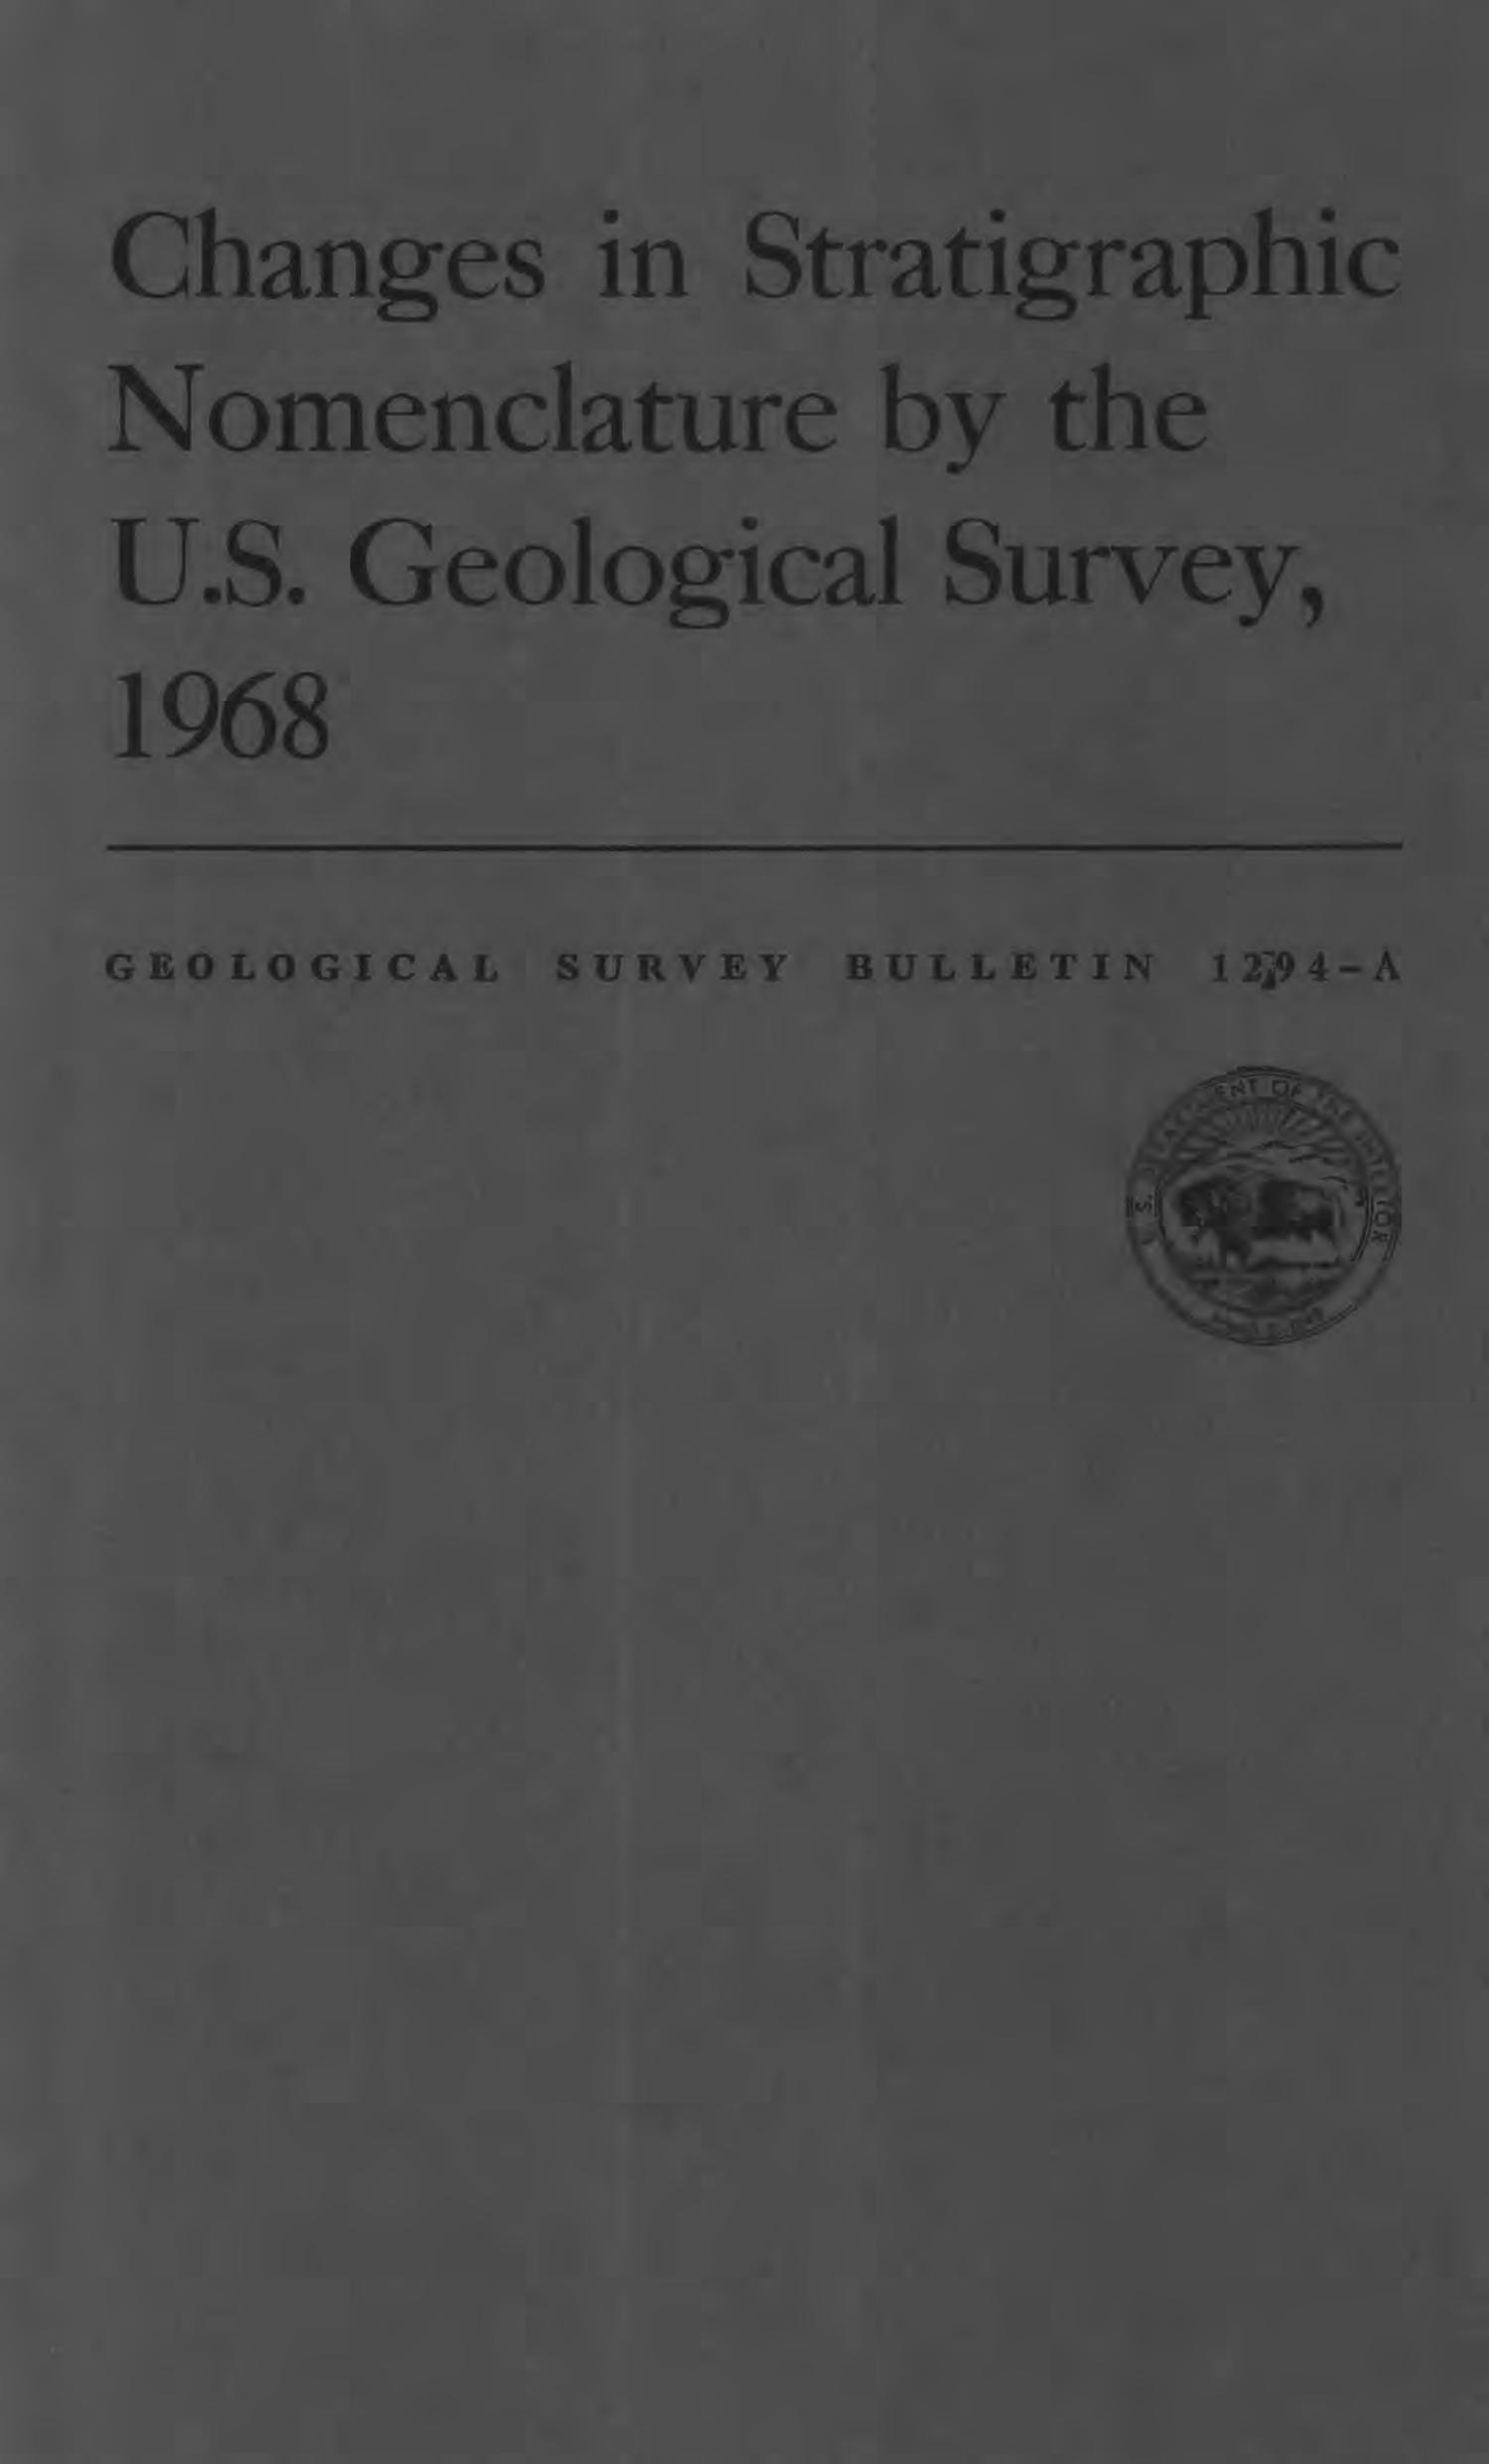 Changes in Stratigraphic Nomenclature by the U.S. Geological Survey, 1968                                                                                                      Front Cover